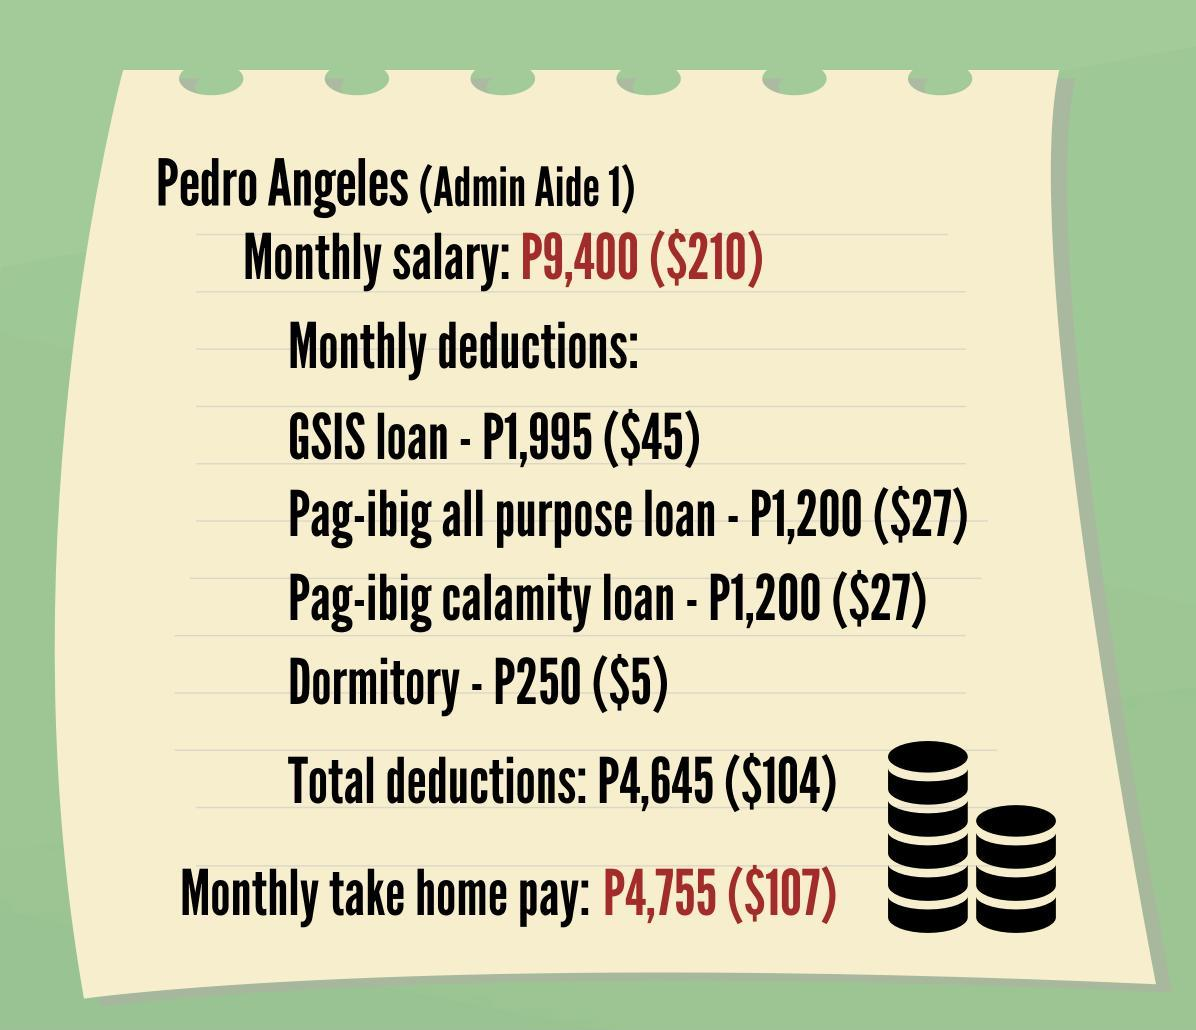 monthly salary pedro angeles_infographic